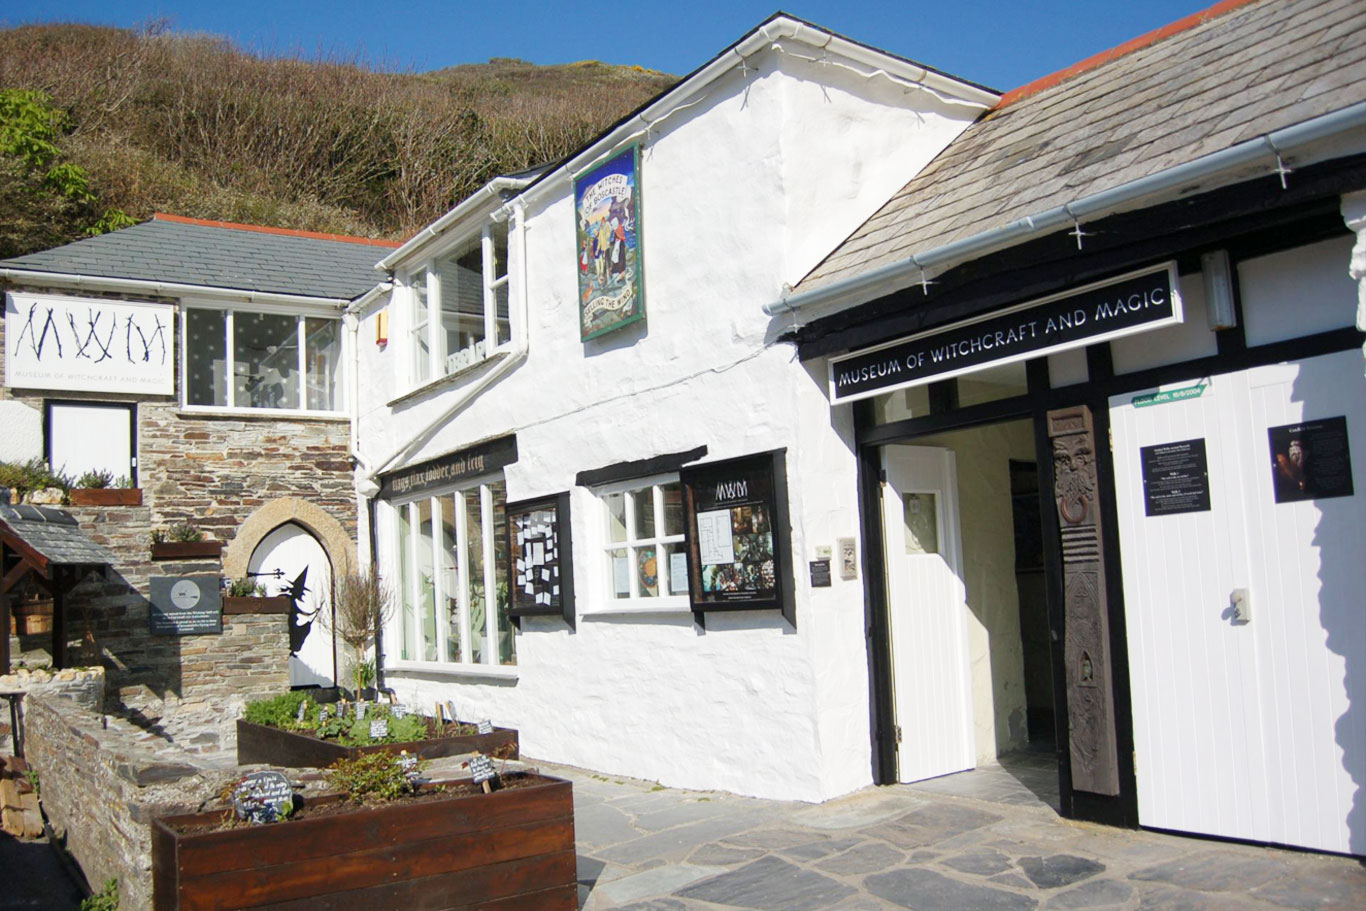 Activities at Kudhva | Days Out - Boscastle Museum of Witchcraft